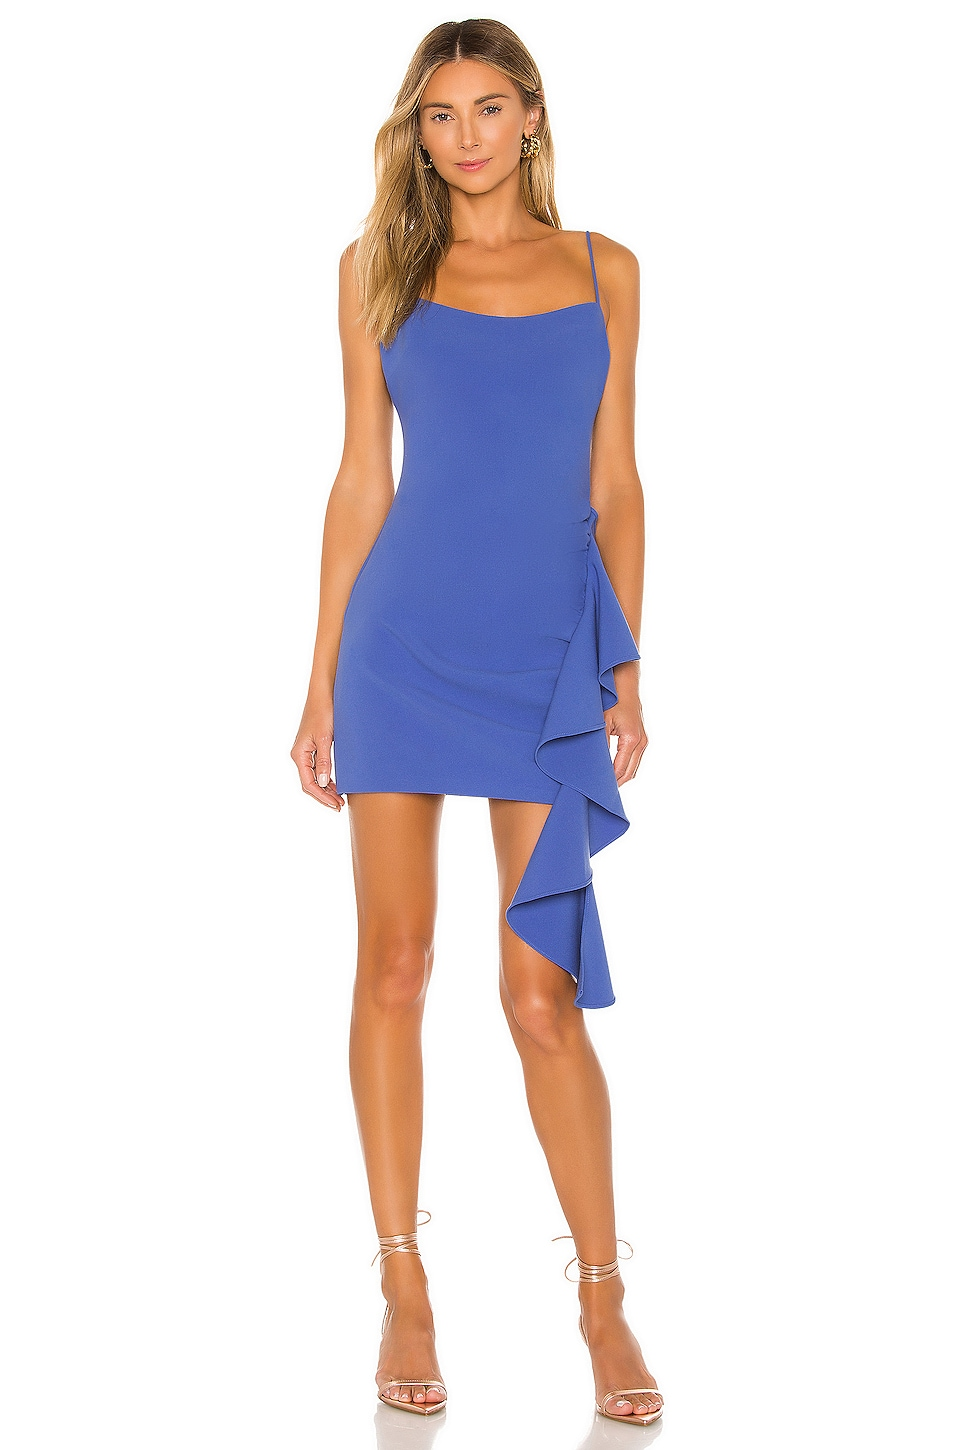 LIKELY Whitney Dress in Amparo Blue